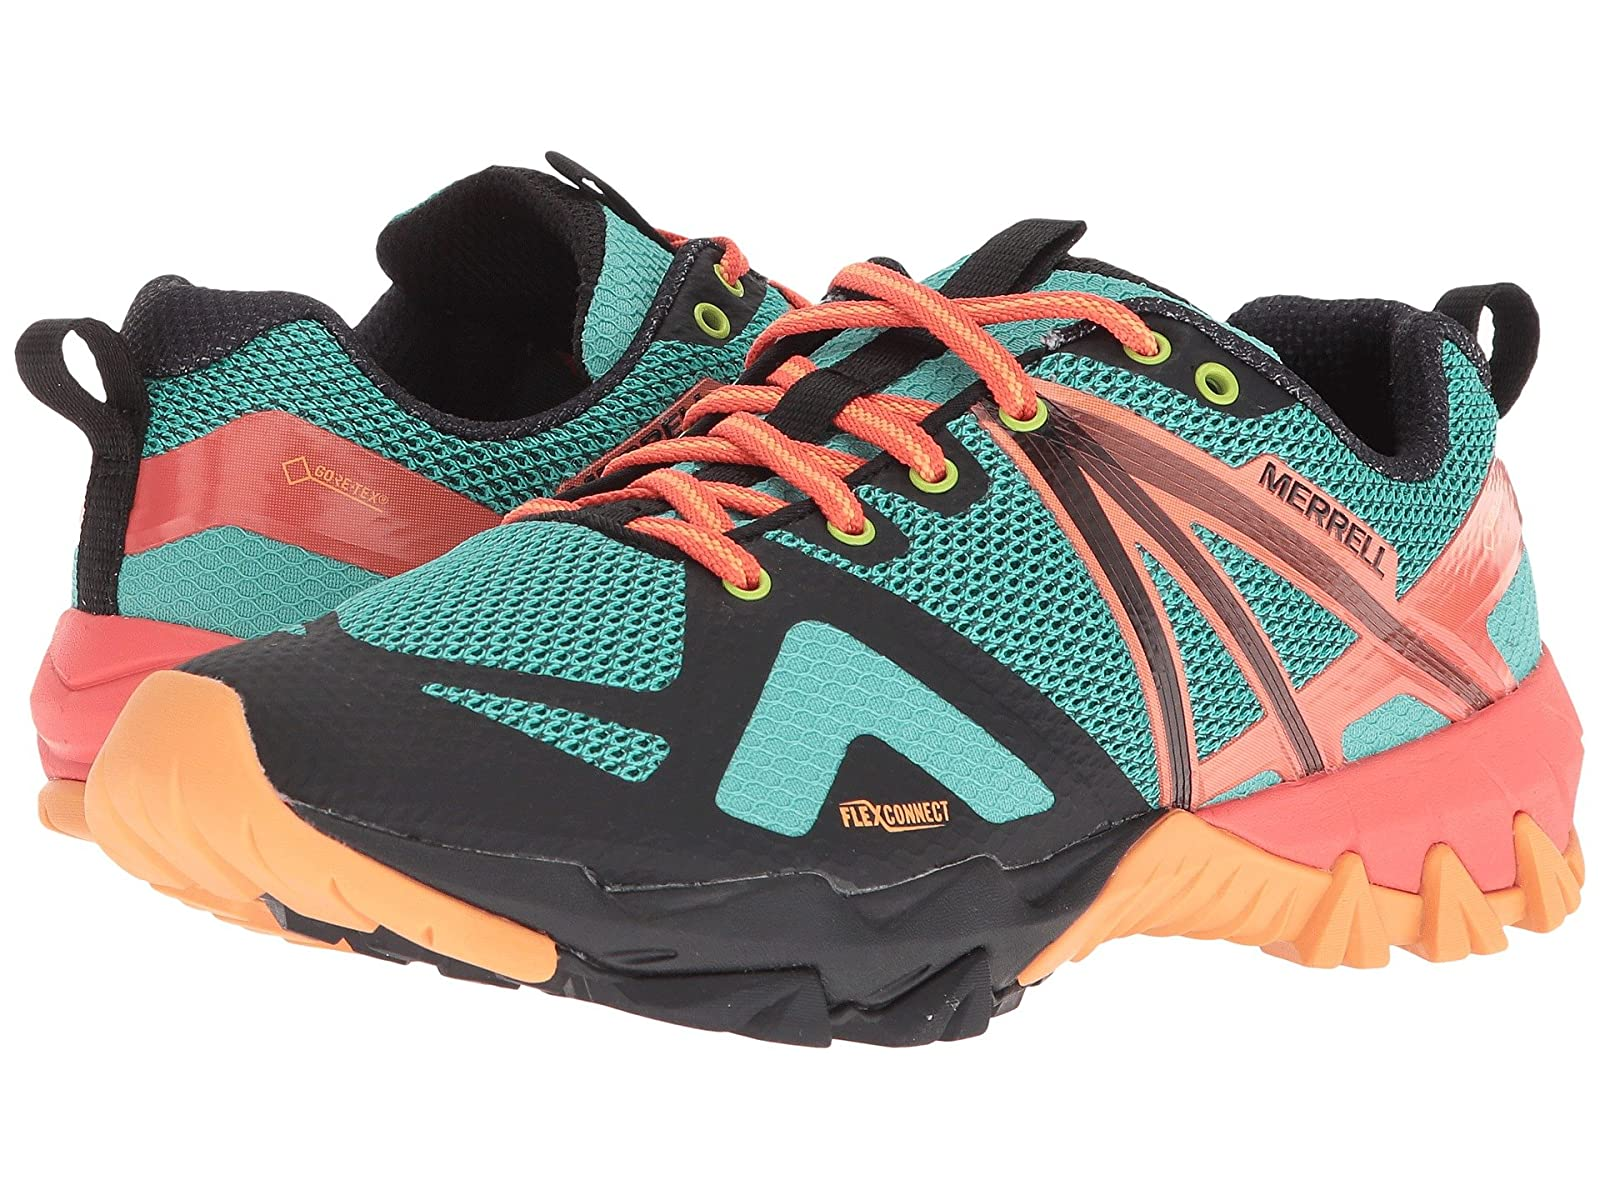 Merrell MQM Flex GTXAtmospheric grades have affordable shoes